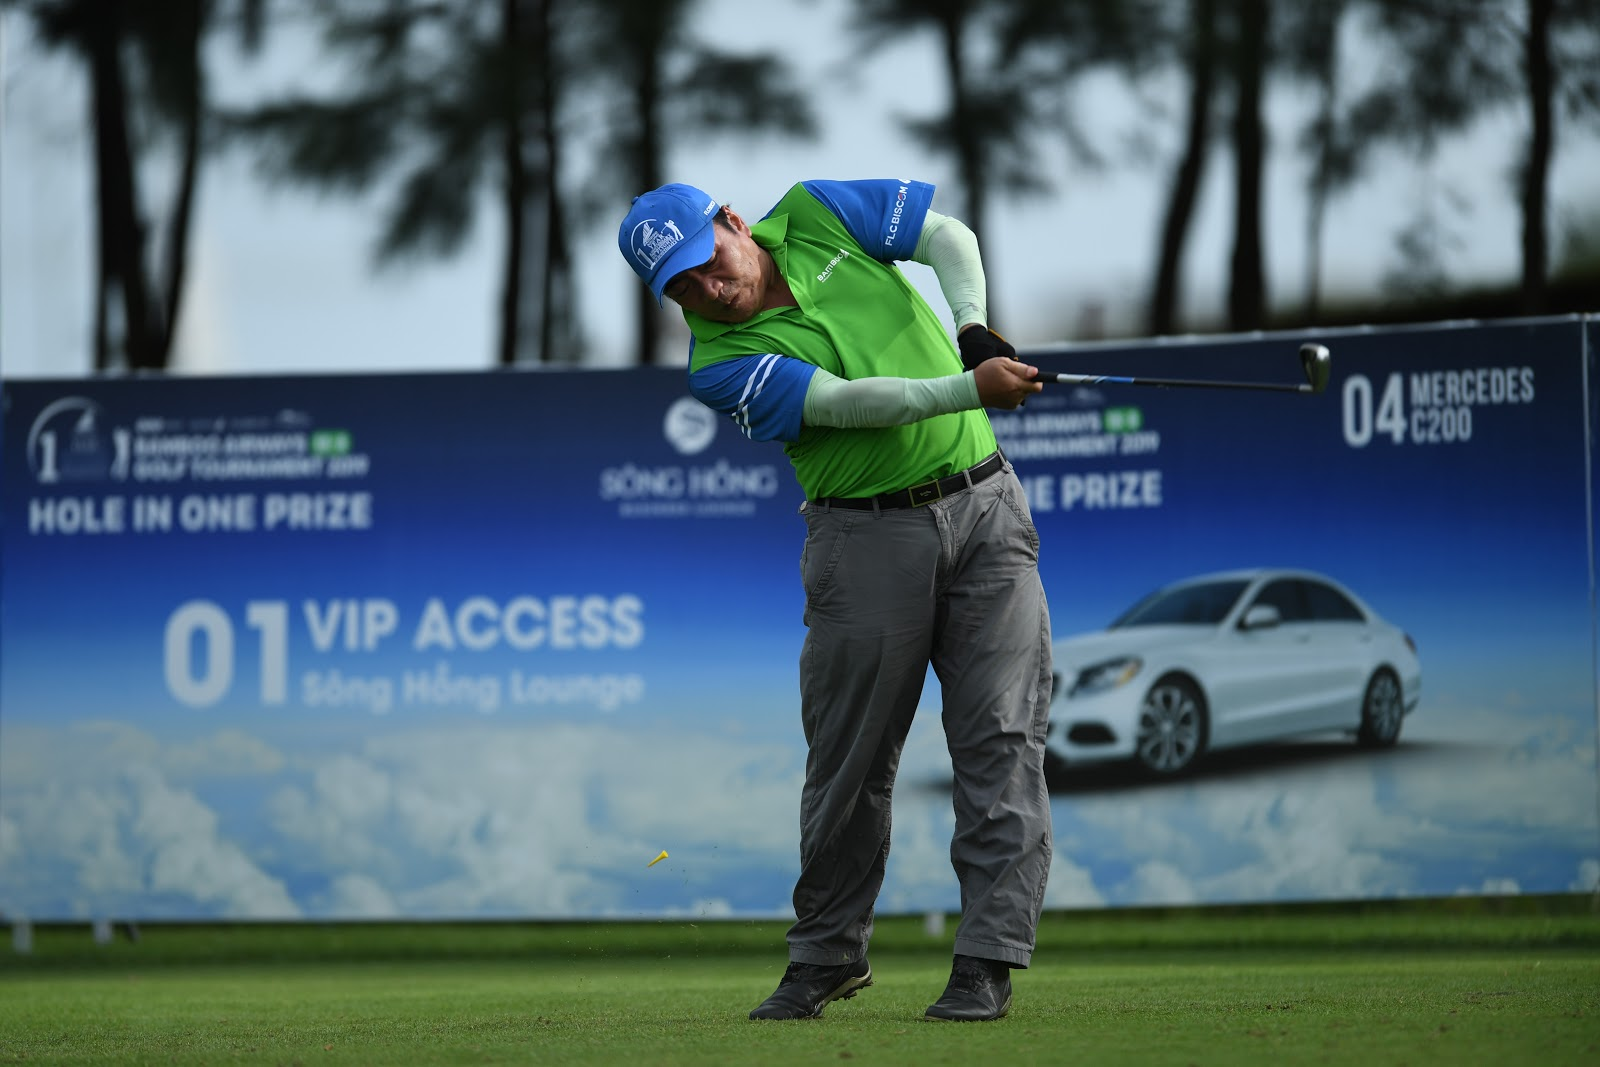 Golfer tại giải Golf Tournament 2019